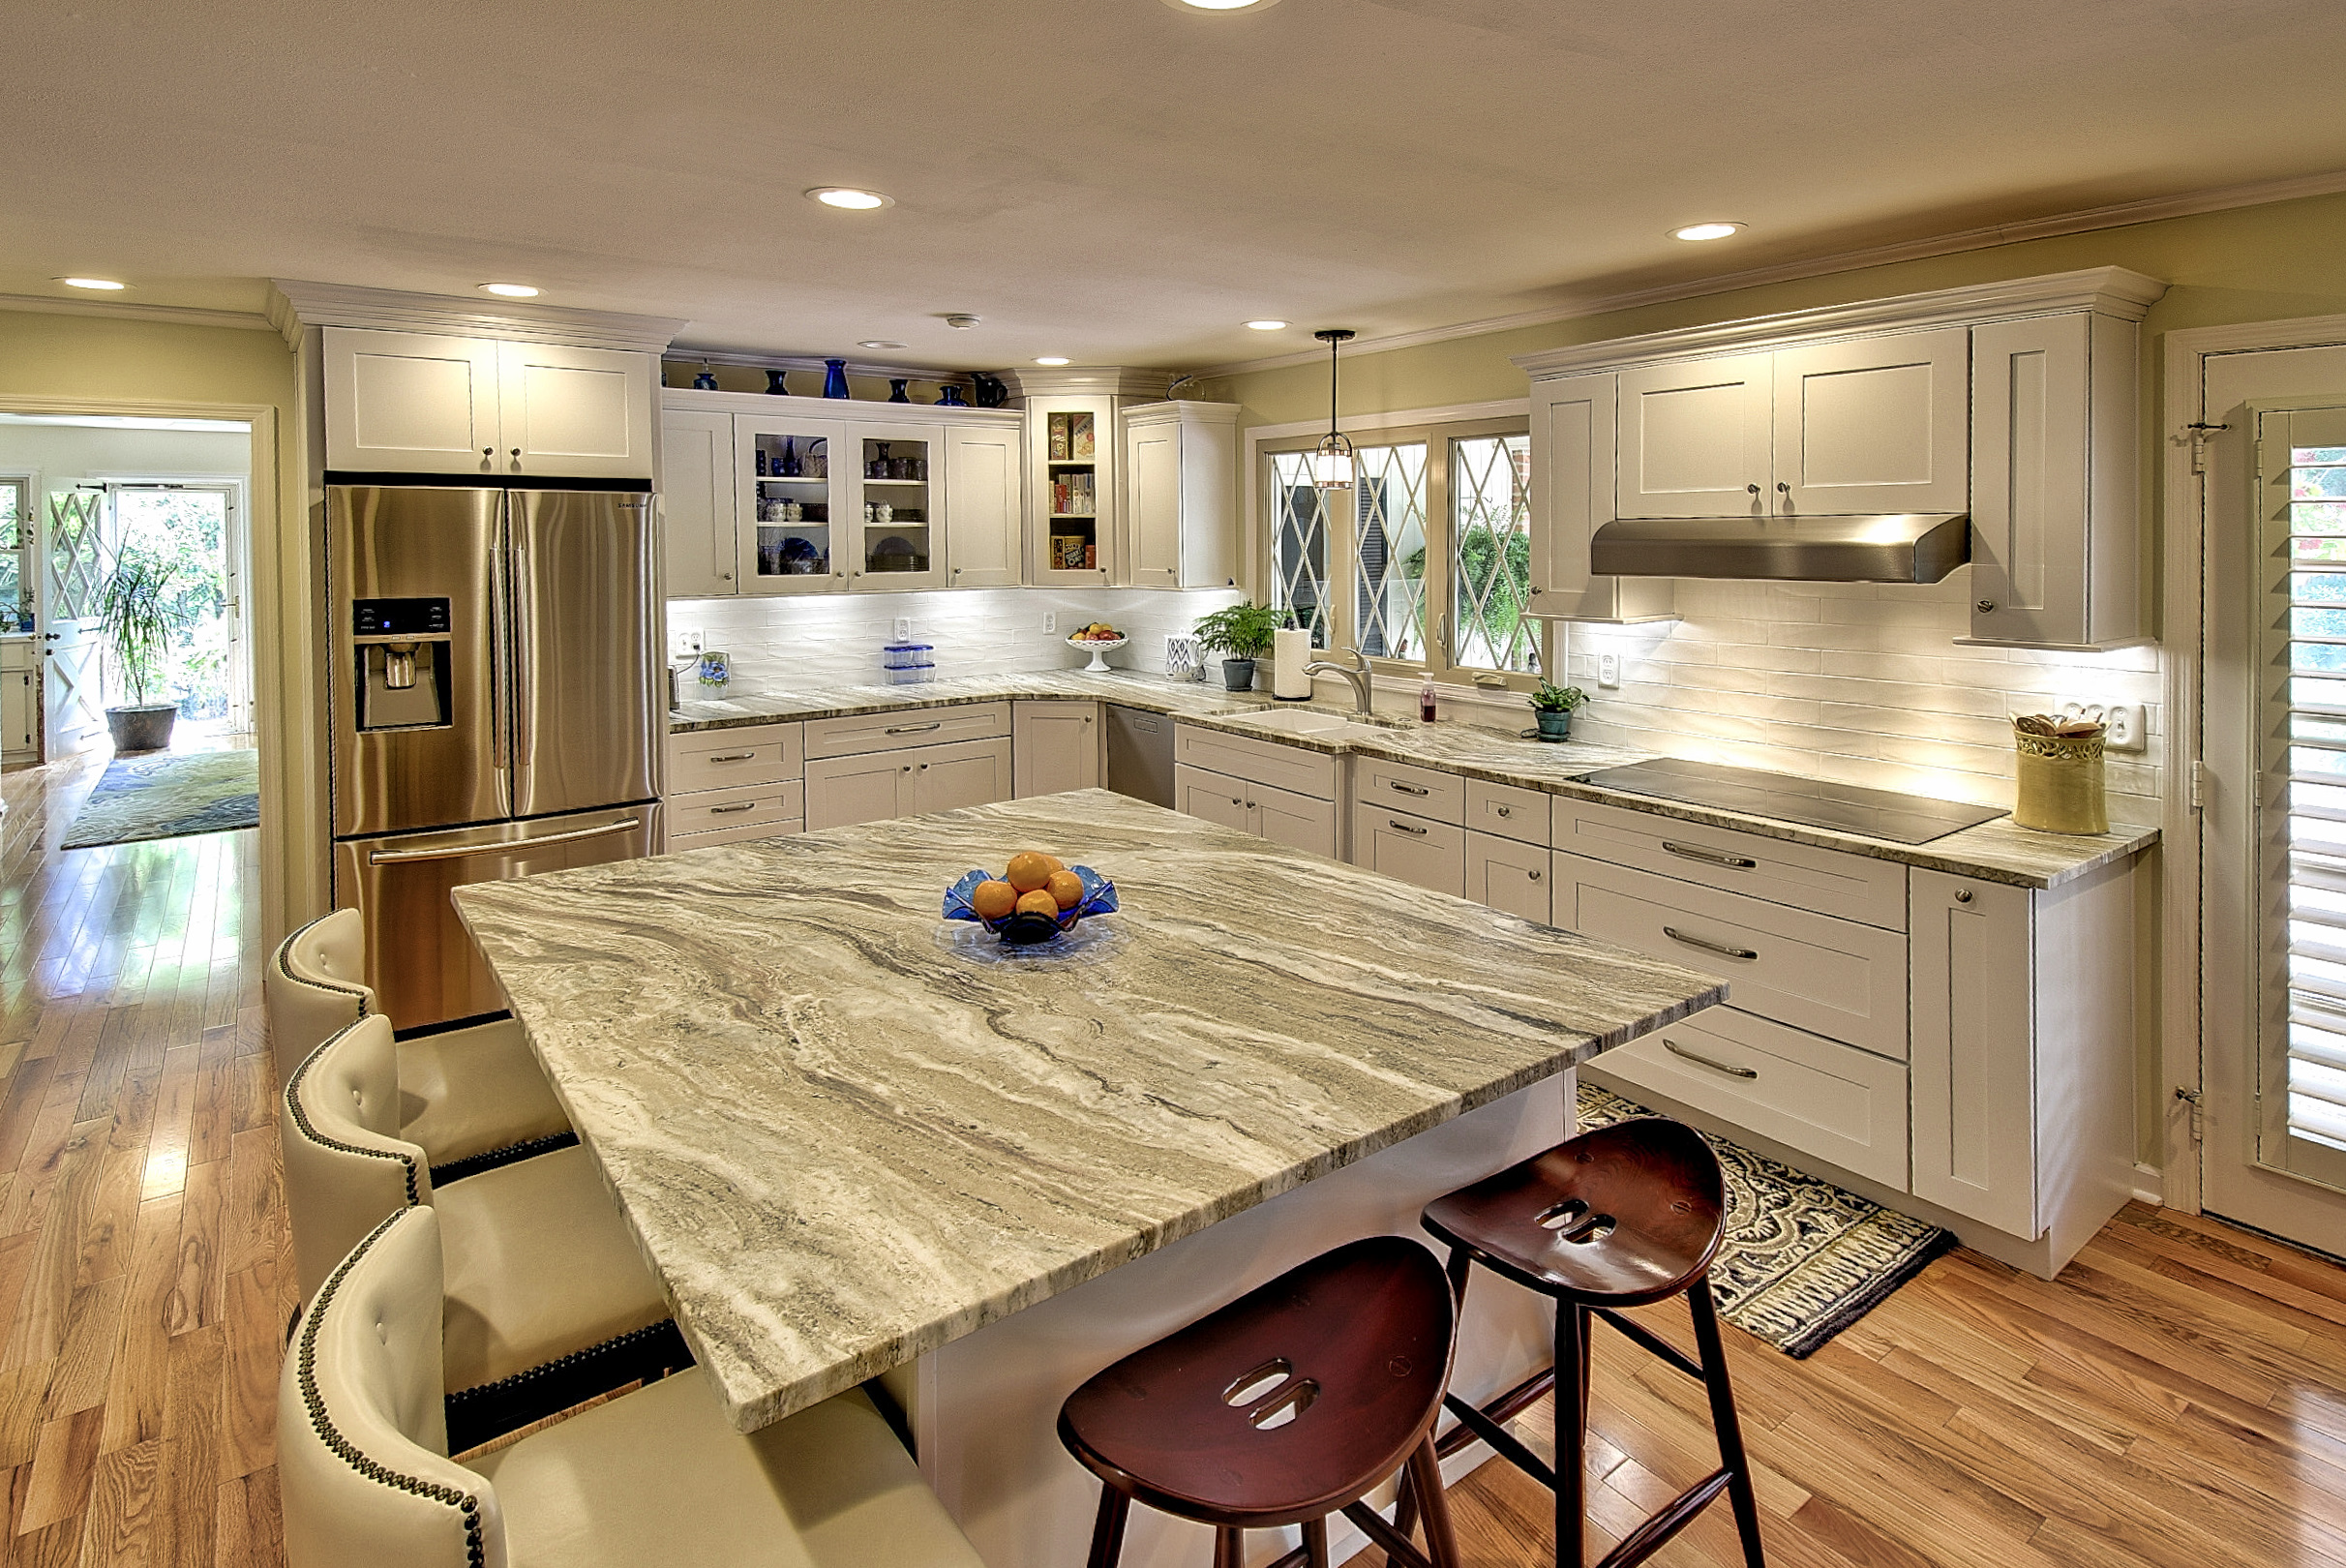 Remodel Design Johnson City Cabinet Retailer Kitchens By Design